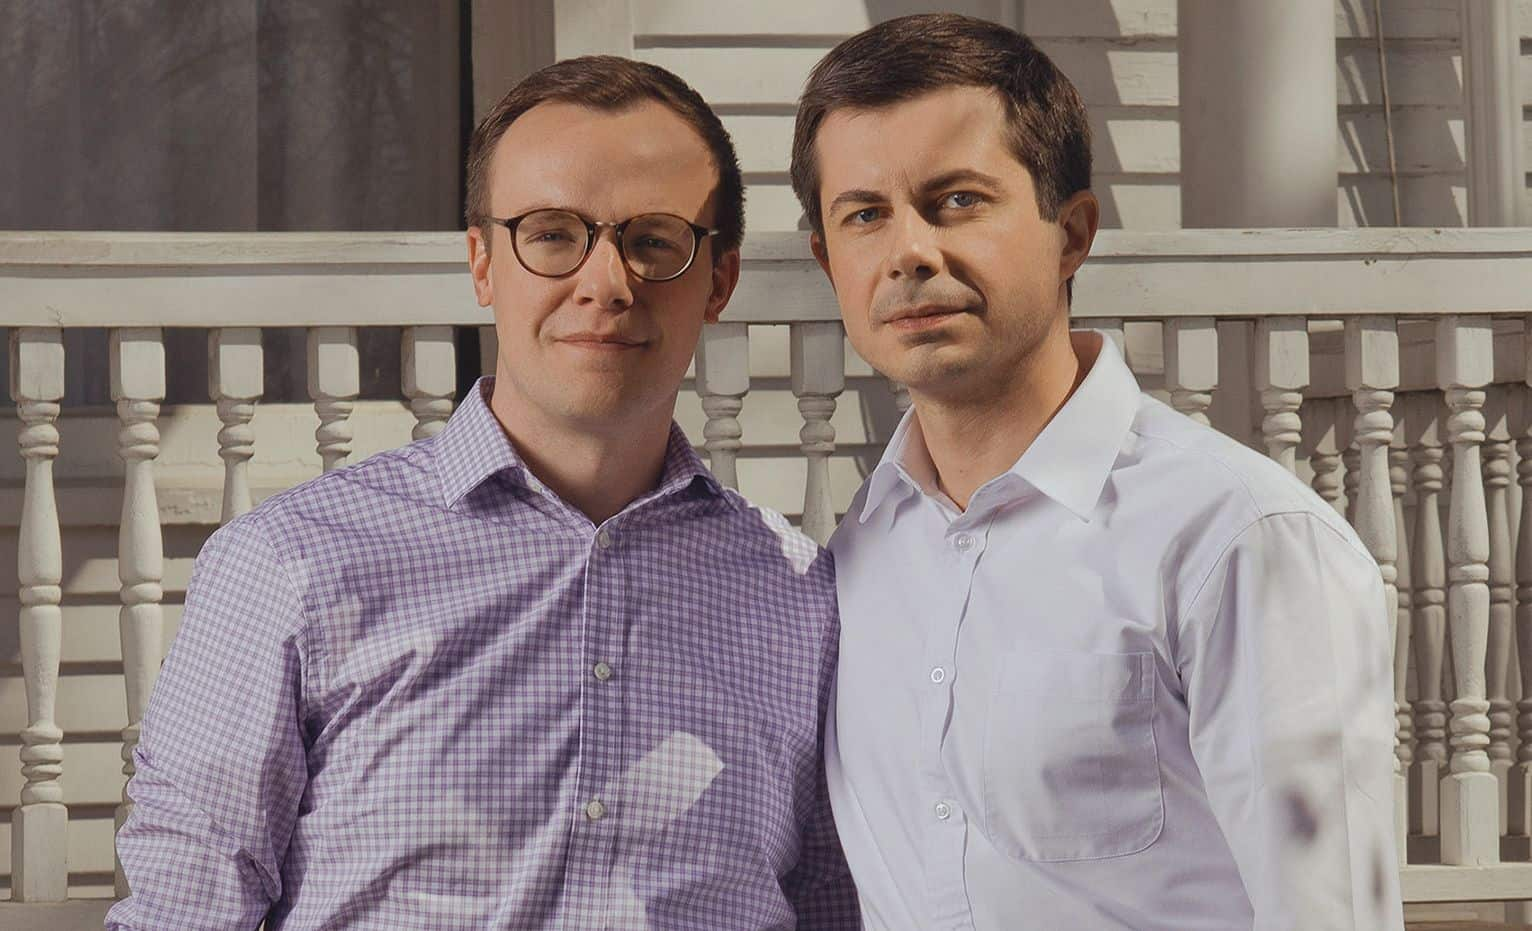 Chasten Glezman and Pete Buttigieg